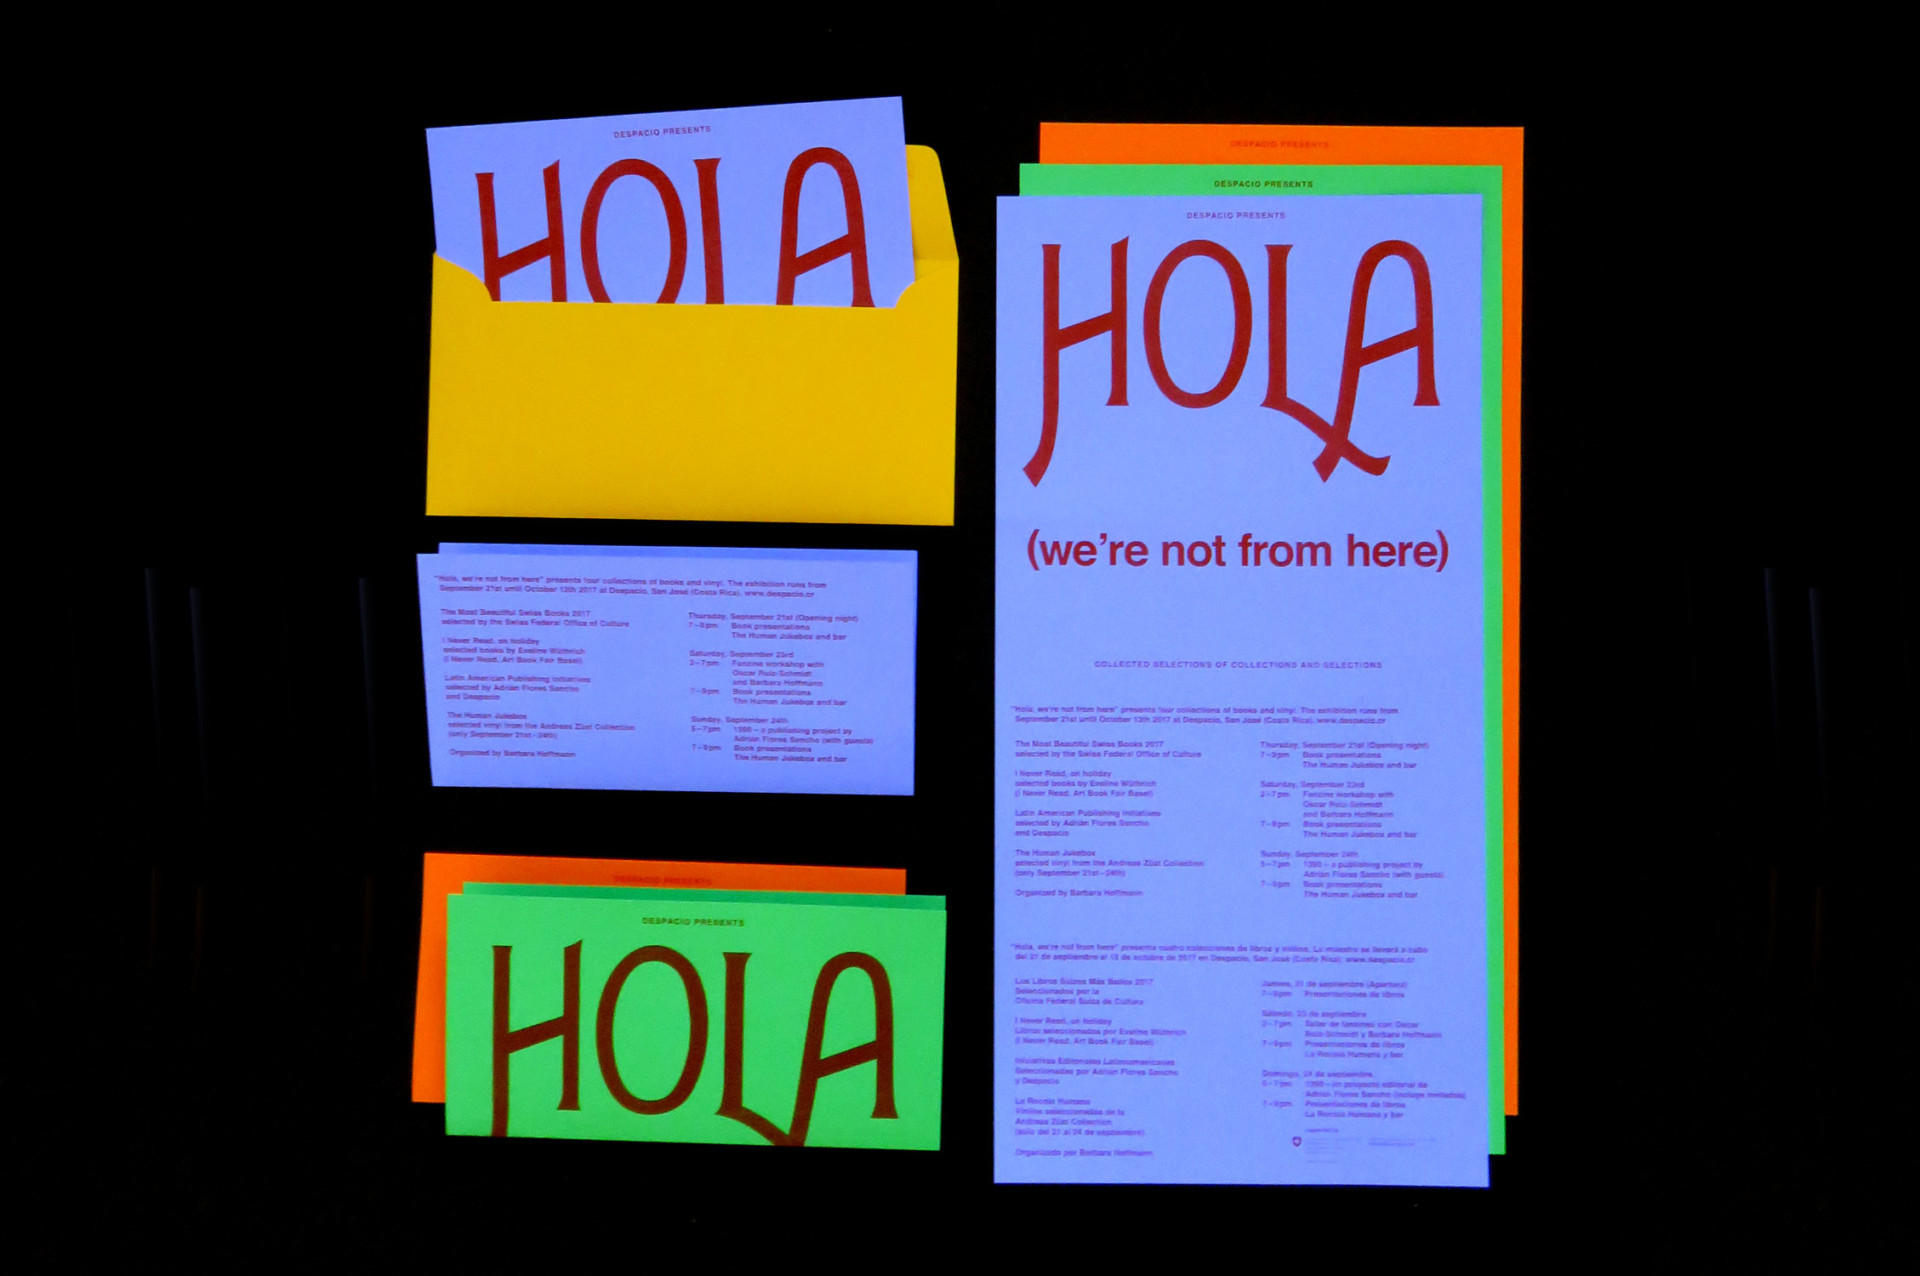 Barbara  Hoffmann Hola (we're not from here)